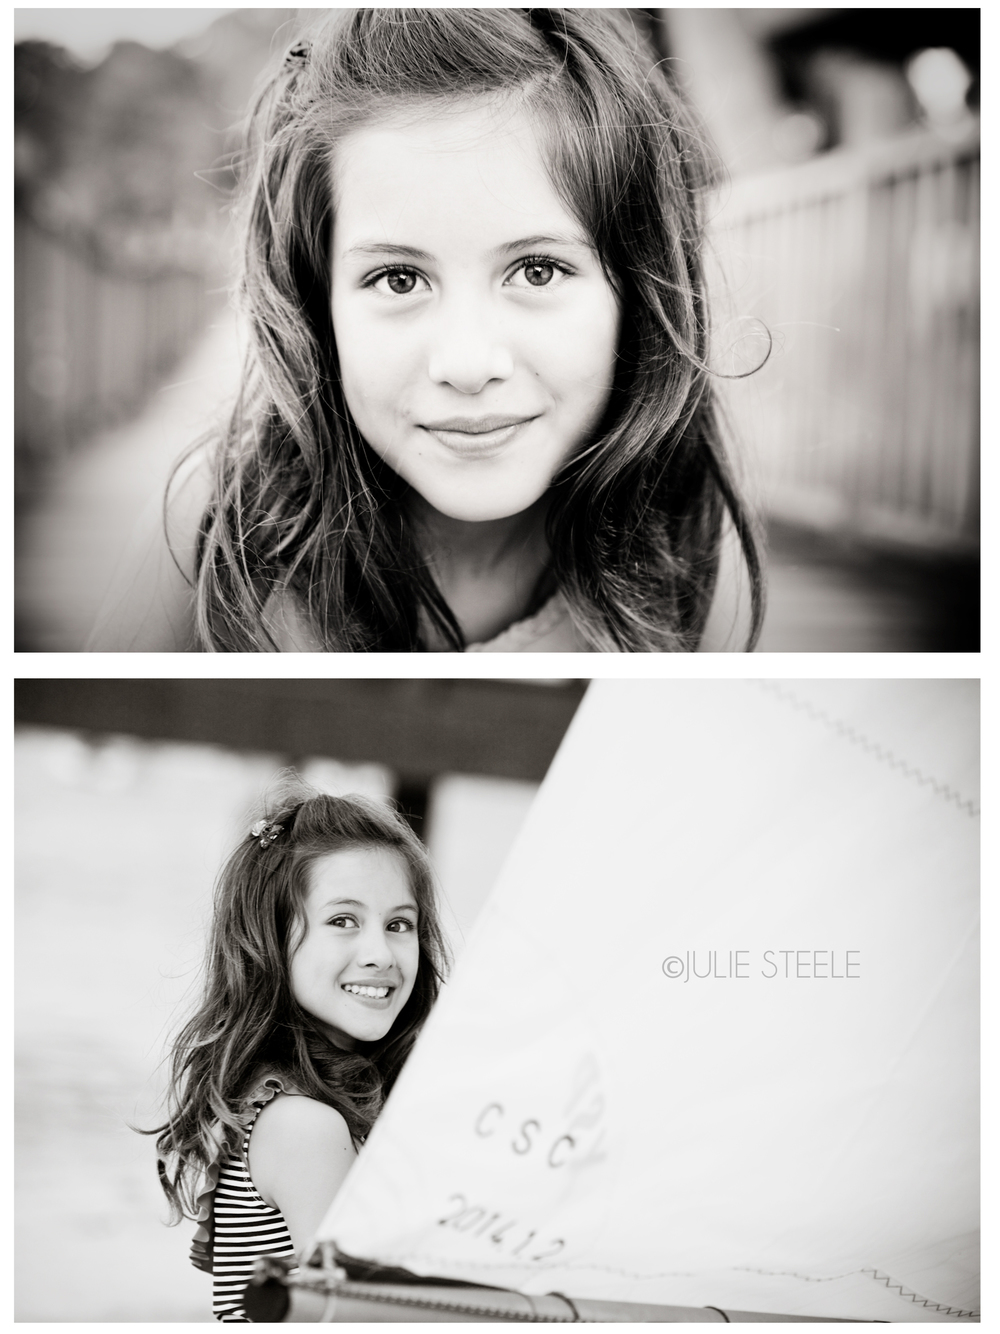 black and white photograph, girl 10 yrs old